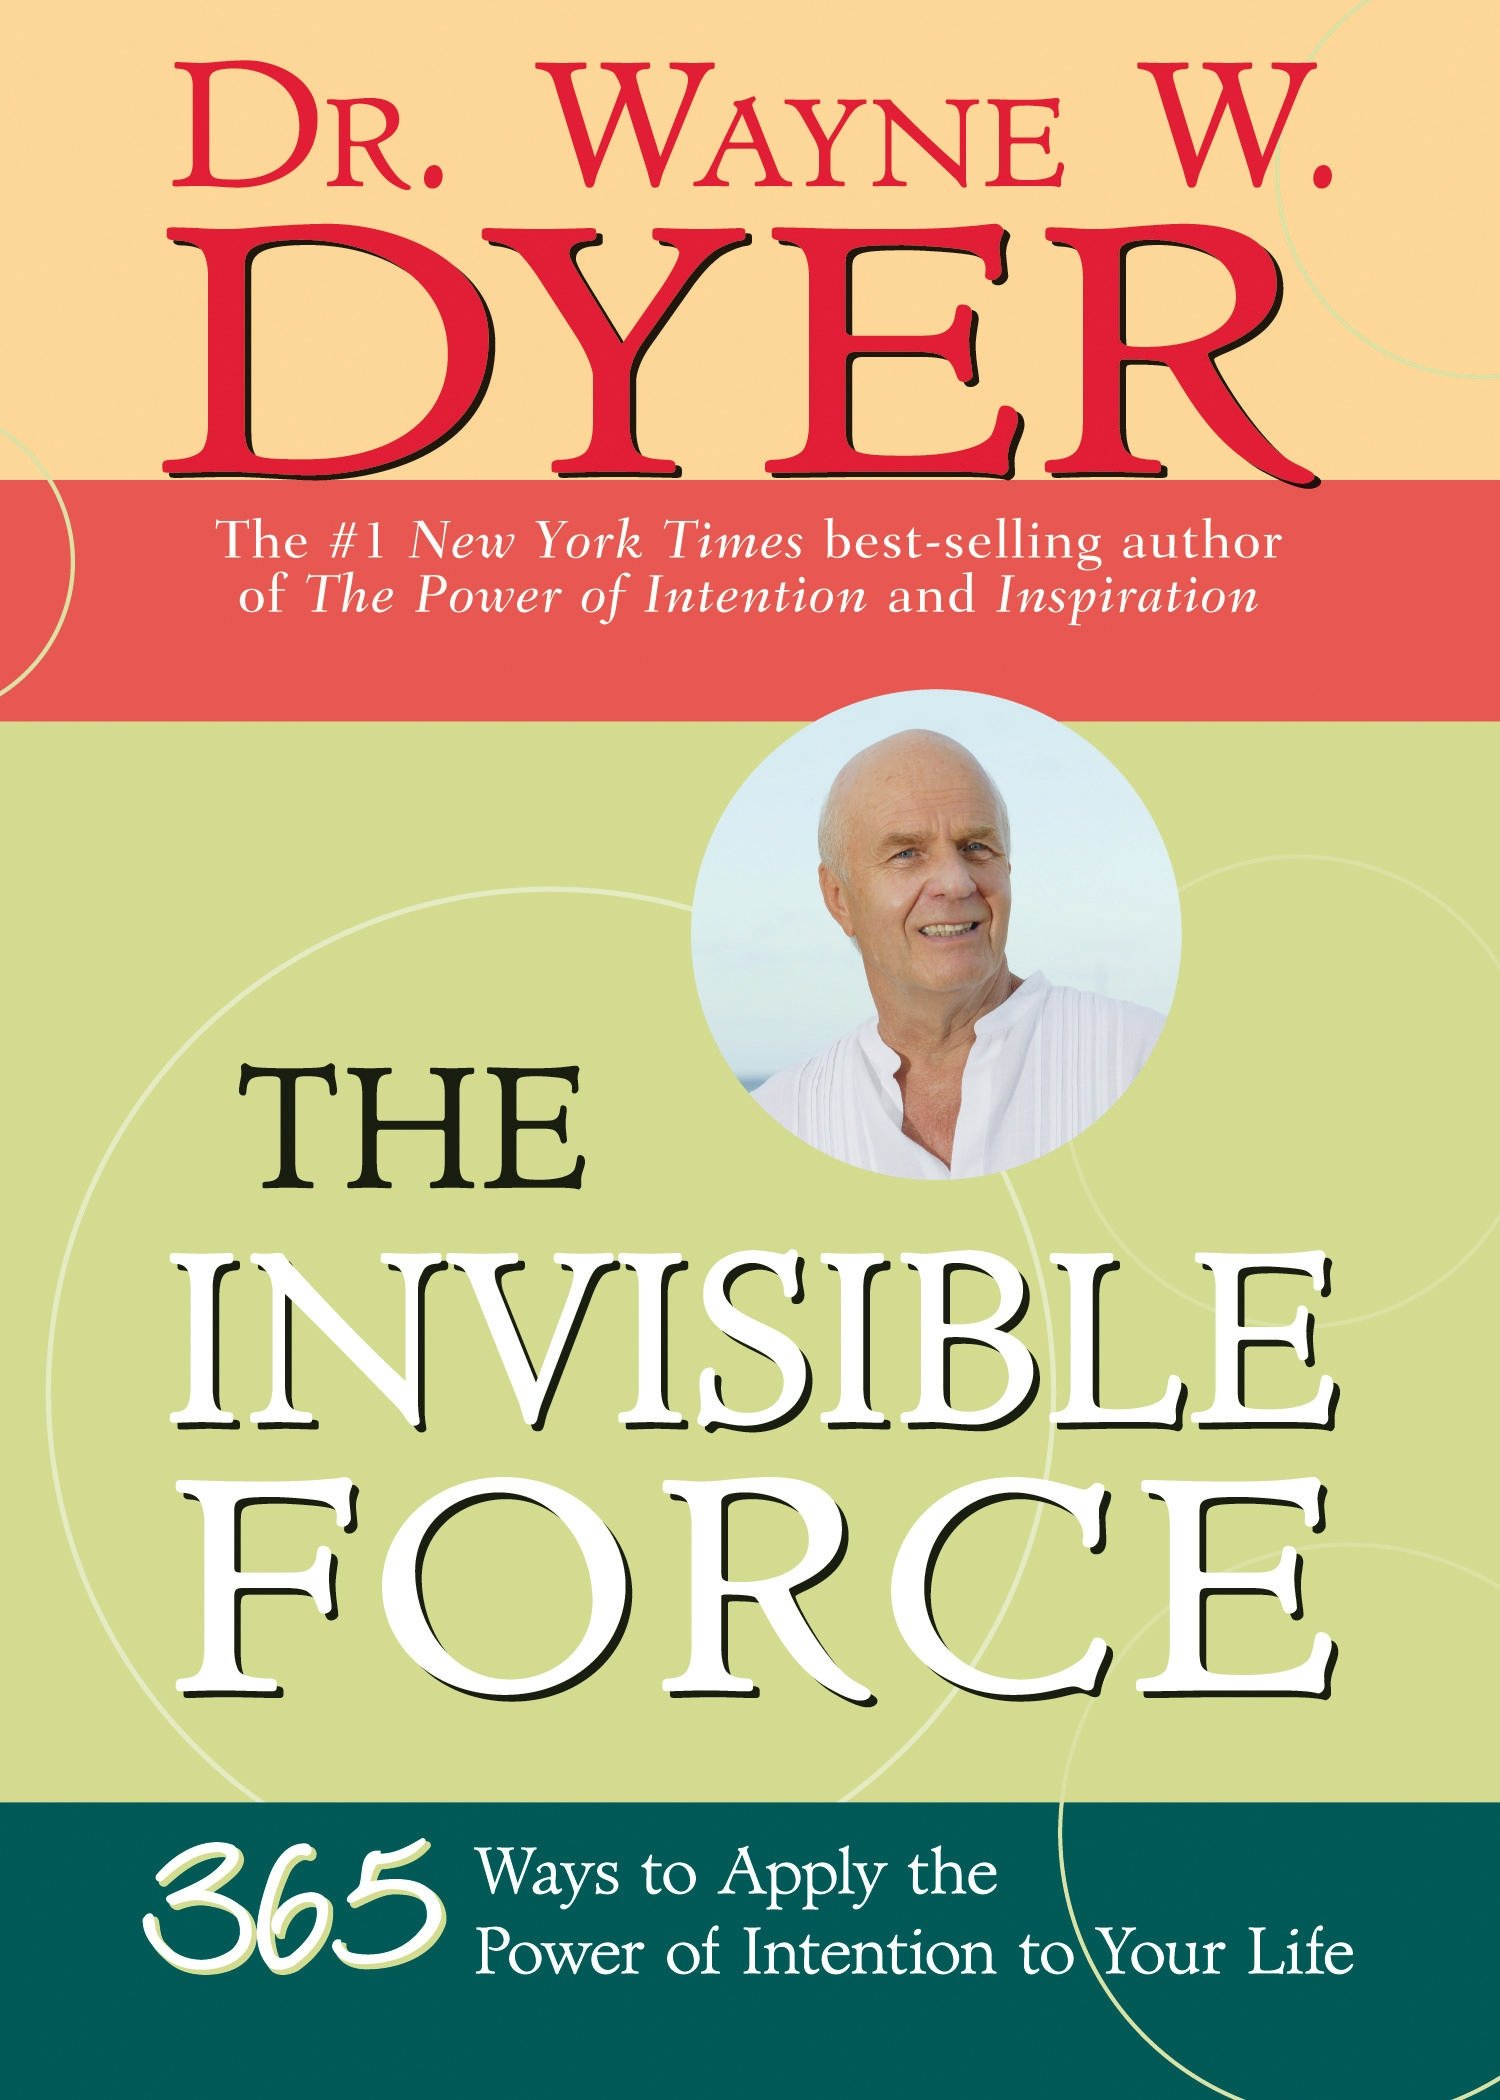 Power wayne pdf of intention the dyer